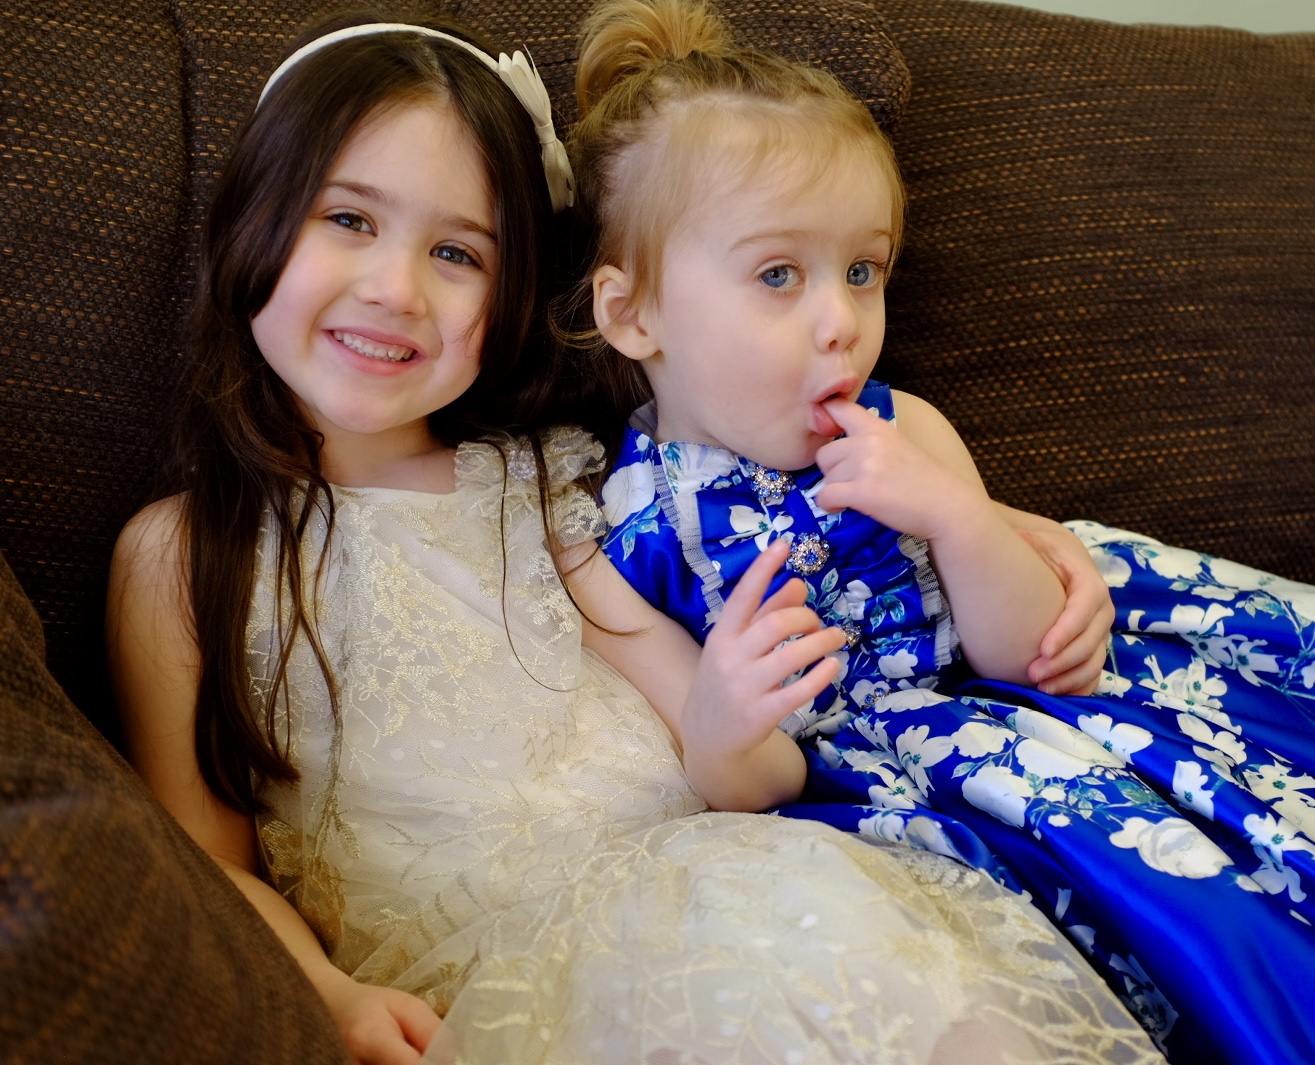 sisters in David Charles spring/summer collection dresses